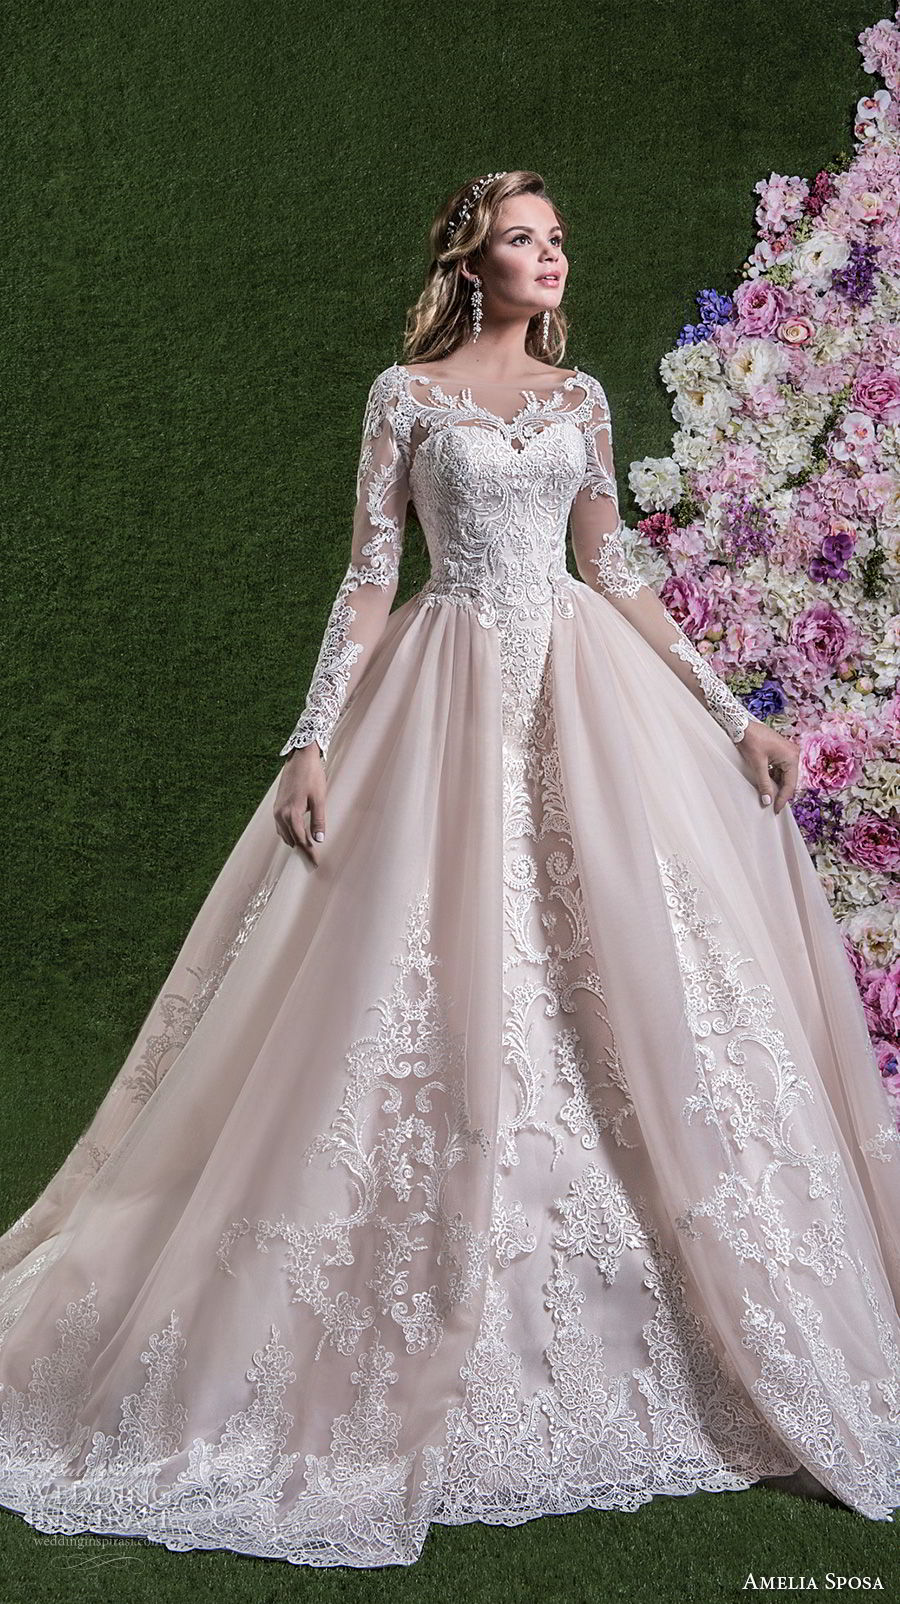 amelia sposa 2018 bridal long sleeves illusion boat sweetheart neckline heavily embellished bodice pink ball gown wedding dream lace back long train (rachele) mv